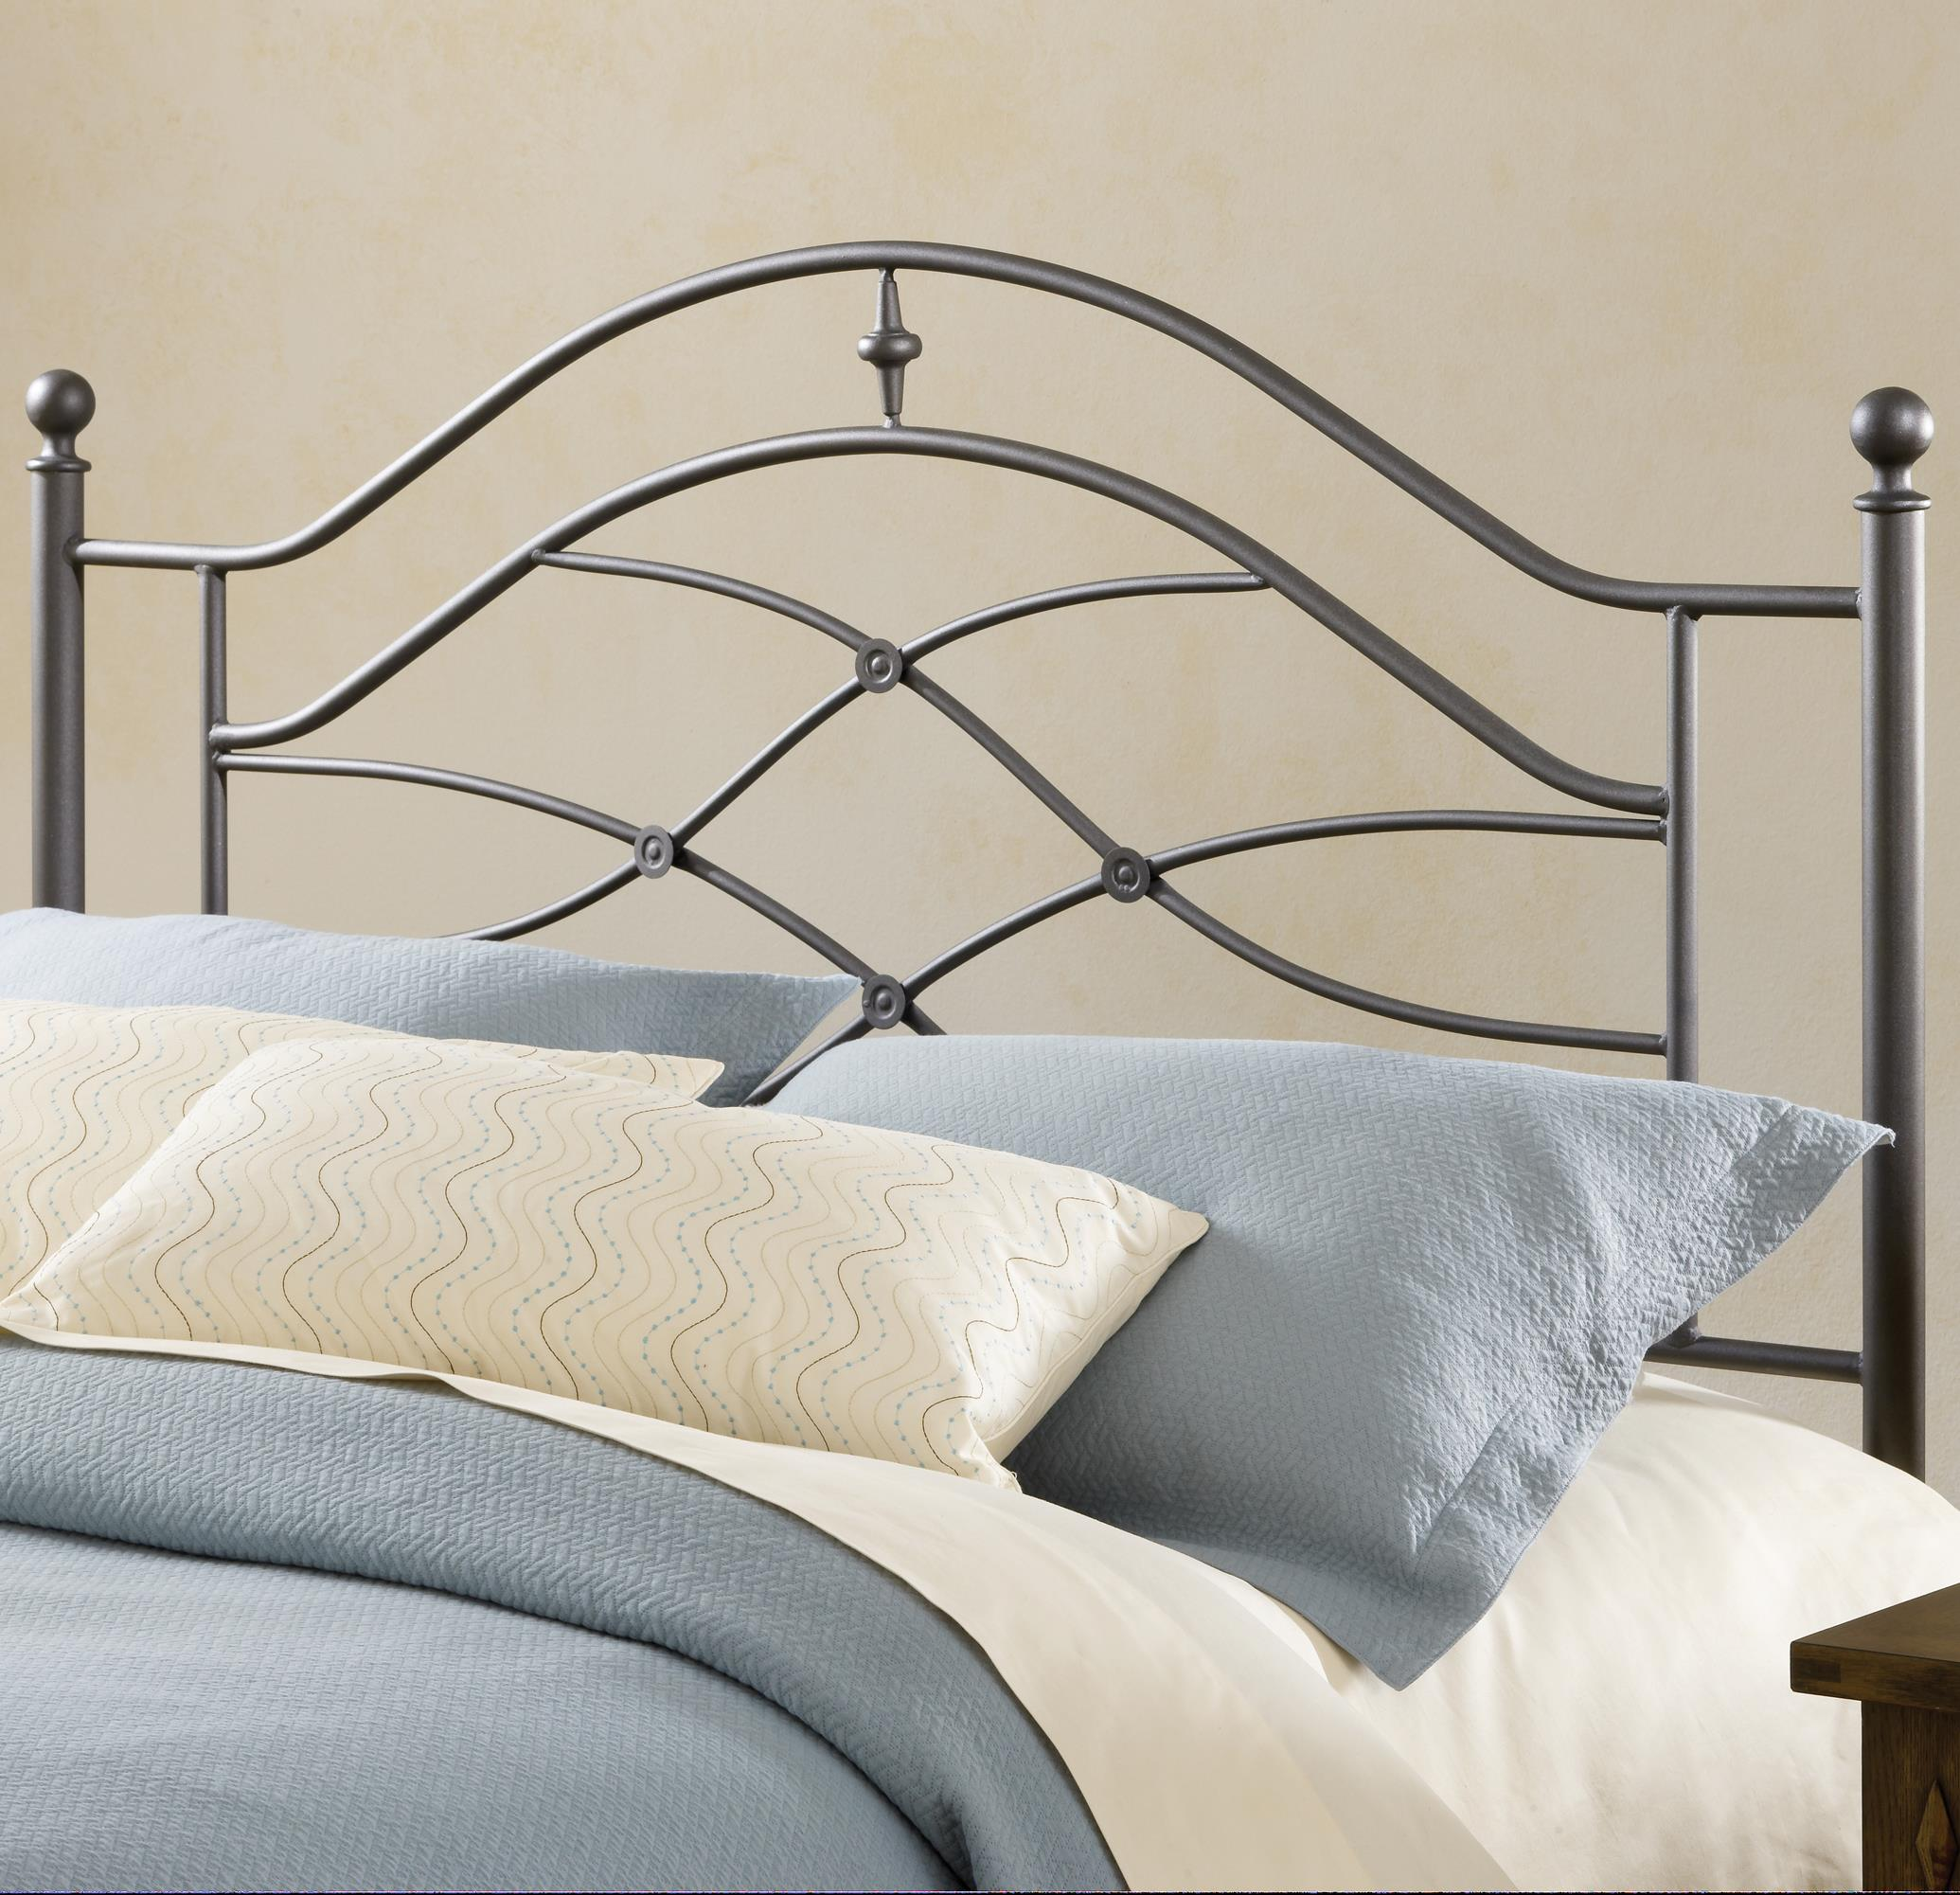 Hillsdale Metal Beds Headboard with Rails - Item Number: 1601HTWR